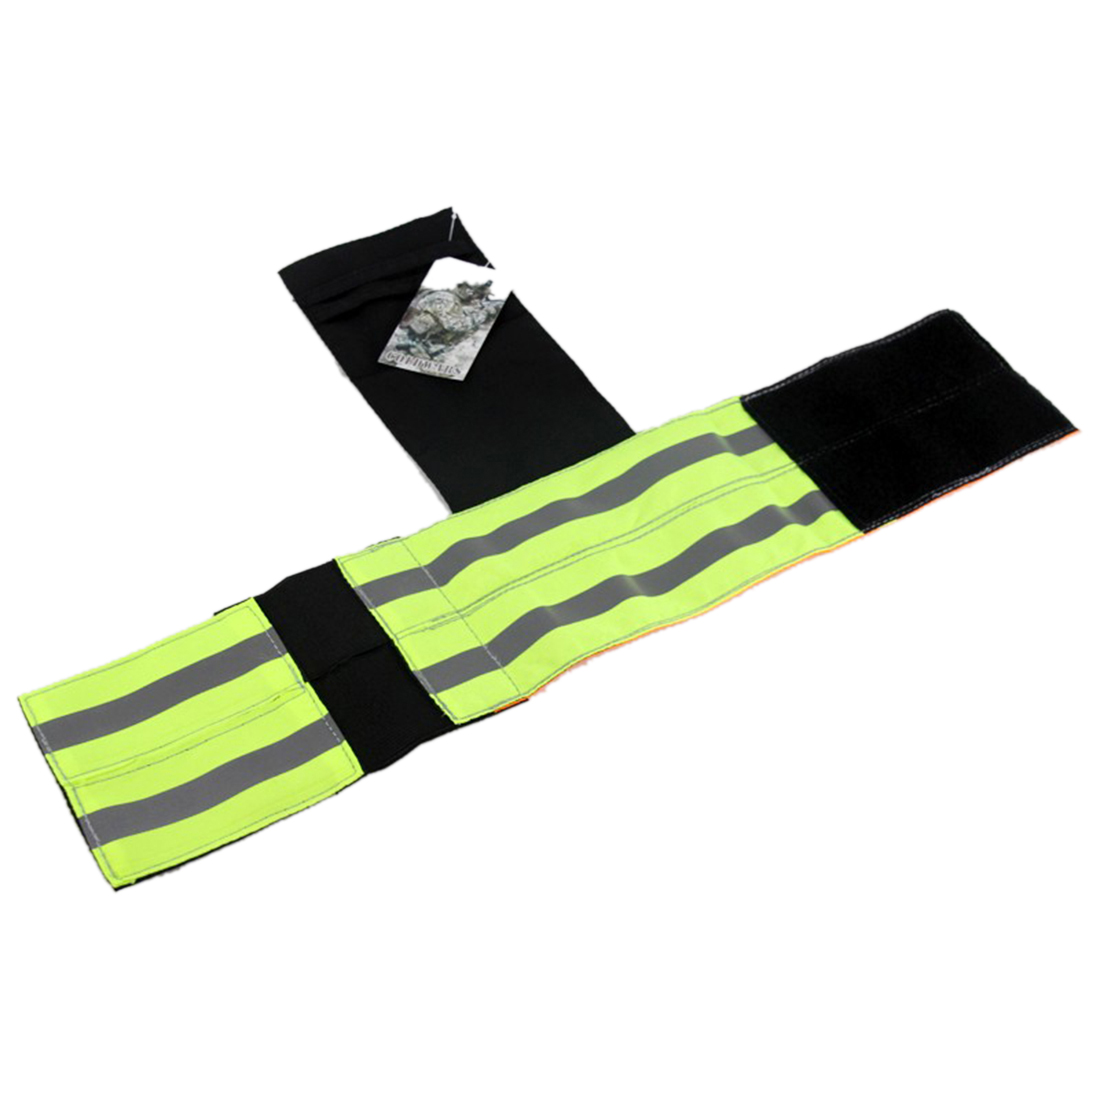 Uniform Armband Double-row Double-sided Reflective Armband Arm Band For Replica Russian Special Forces Uniform